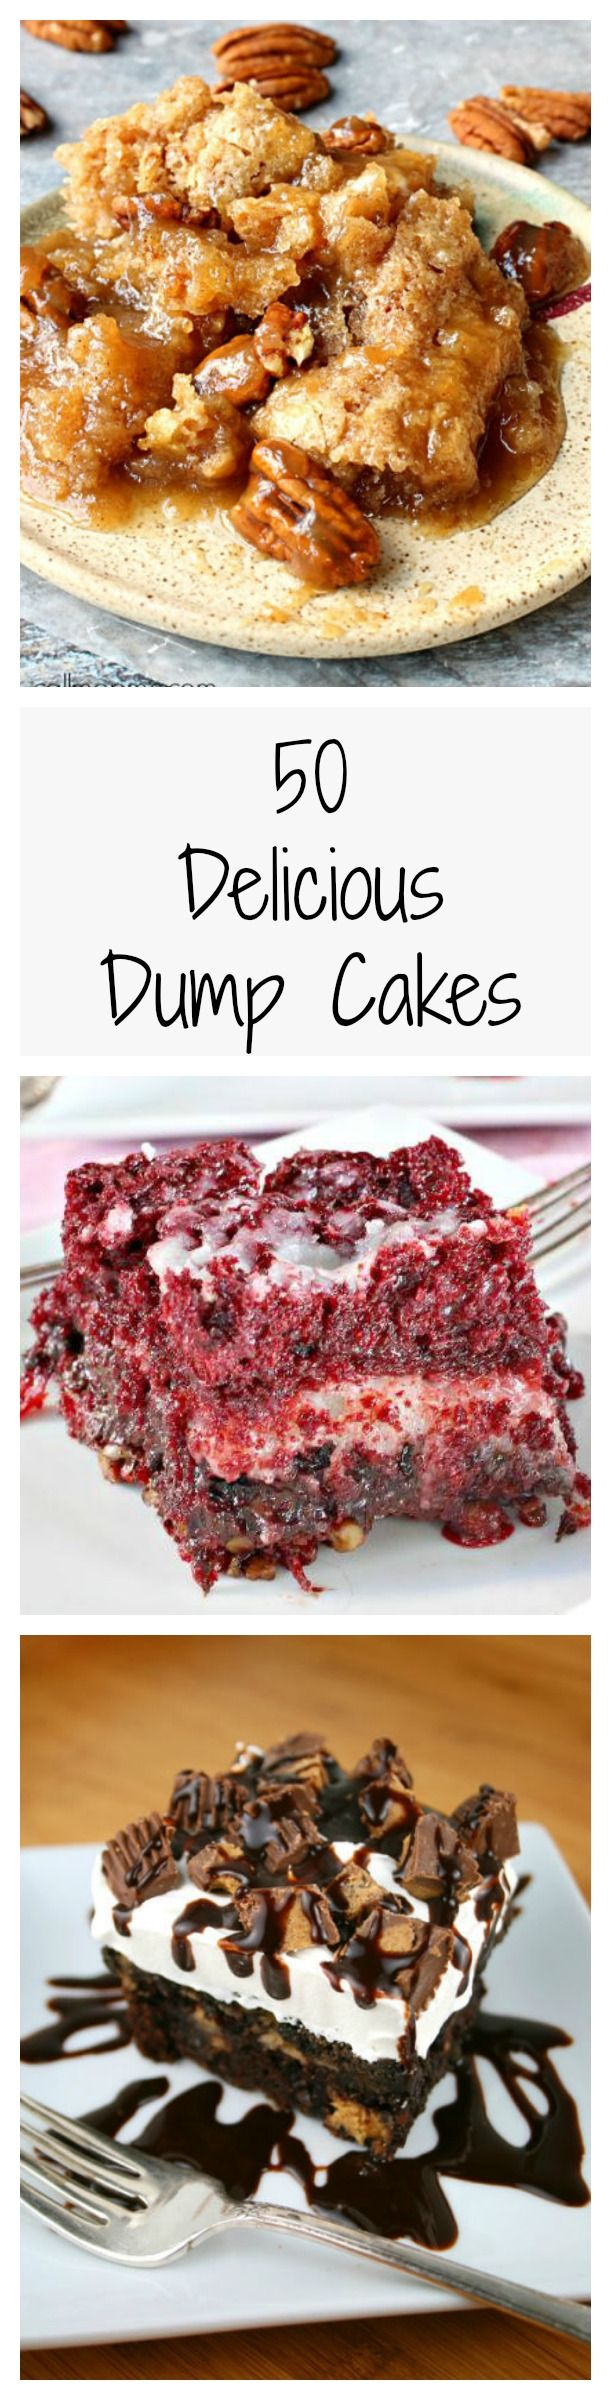 Don't be fooled by the name—these dump cakes are downright delicious, and easy to make!